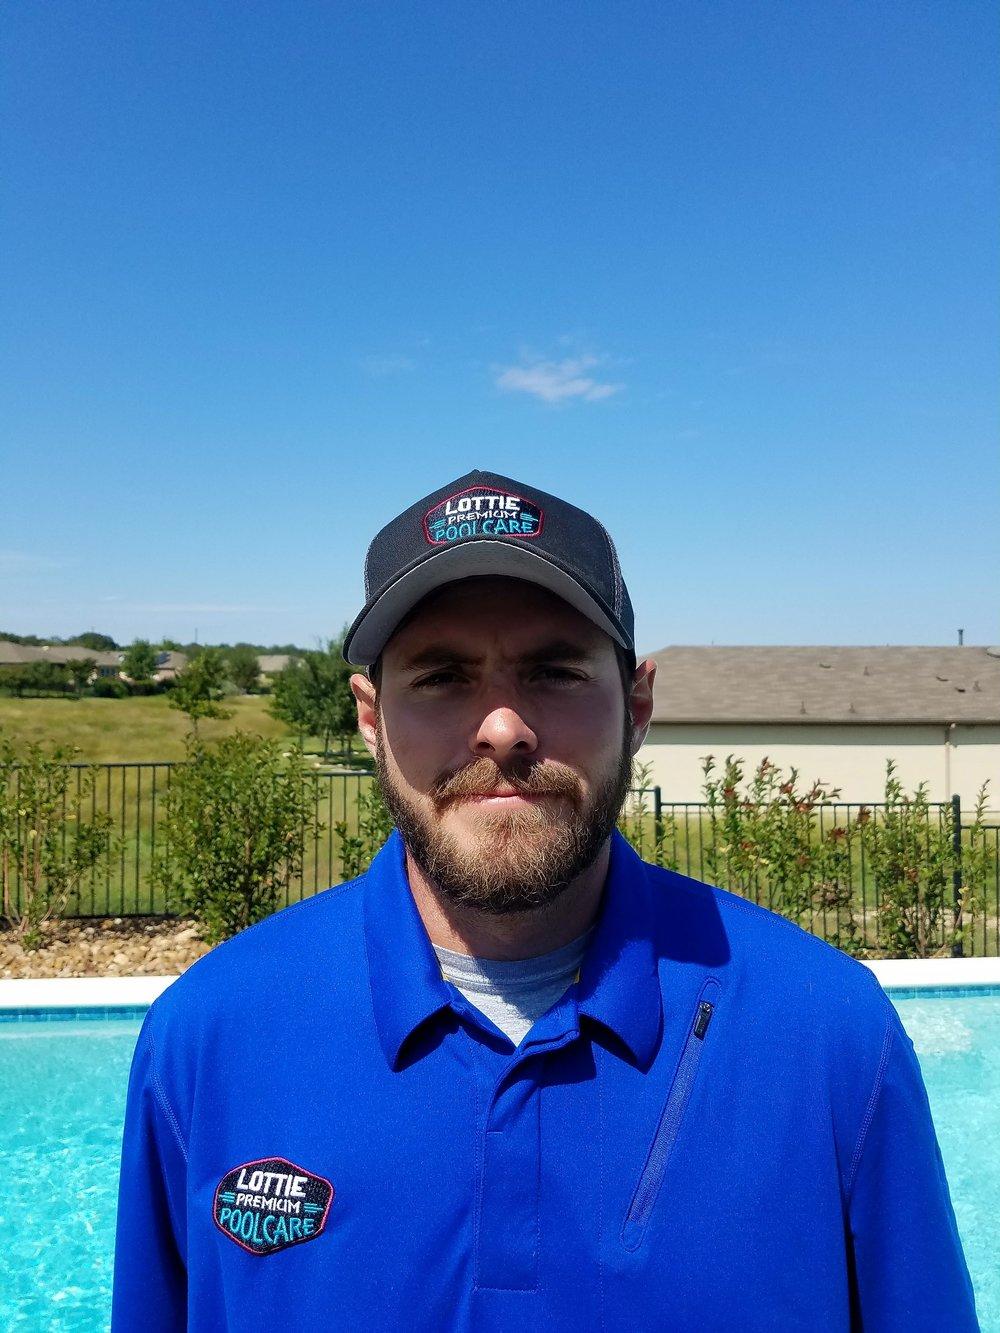 - Matthew Lottie-Owner of Lottie pool CareMatt started cleaning pools with his older brother in Southern California and has learned a lot over the years he has been in the pool industry.Matt has taken several industry technical classes and is certified in the state of Texas as a Appliance installer.Matt is a eagle scout of the boy scouts of america and is a family man+Appliance Installer Electrical License # 330565+ Zodiac Academy Technical Training